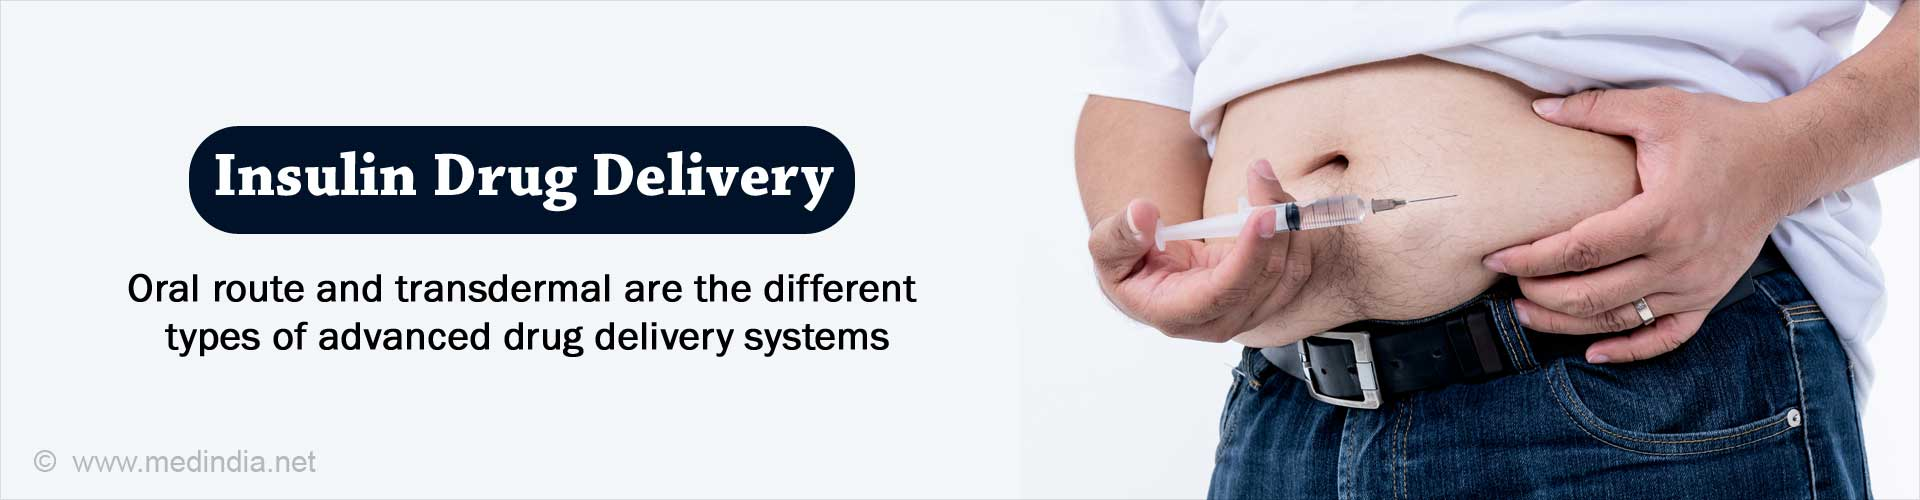 Drug Delivery Systems - Use in Diabetes Management